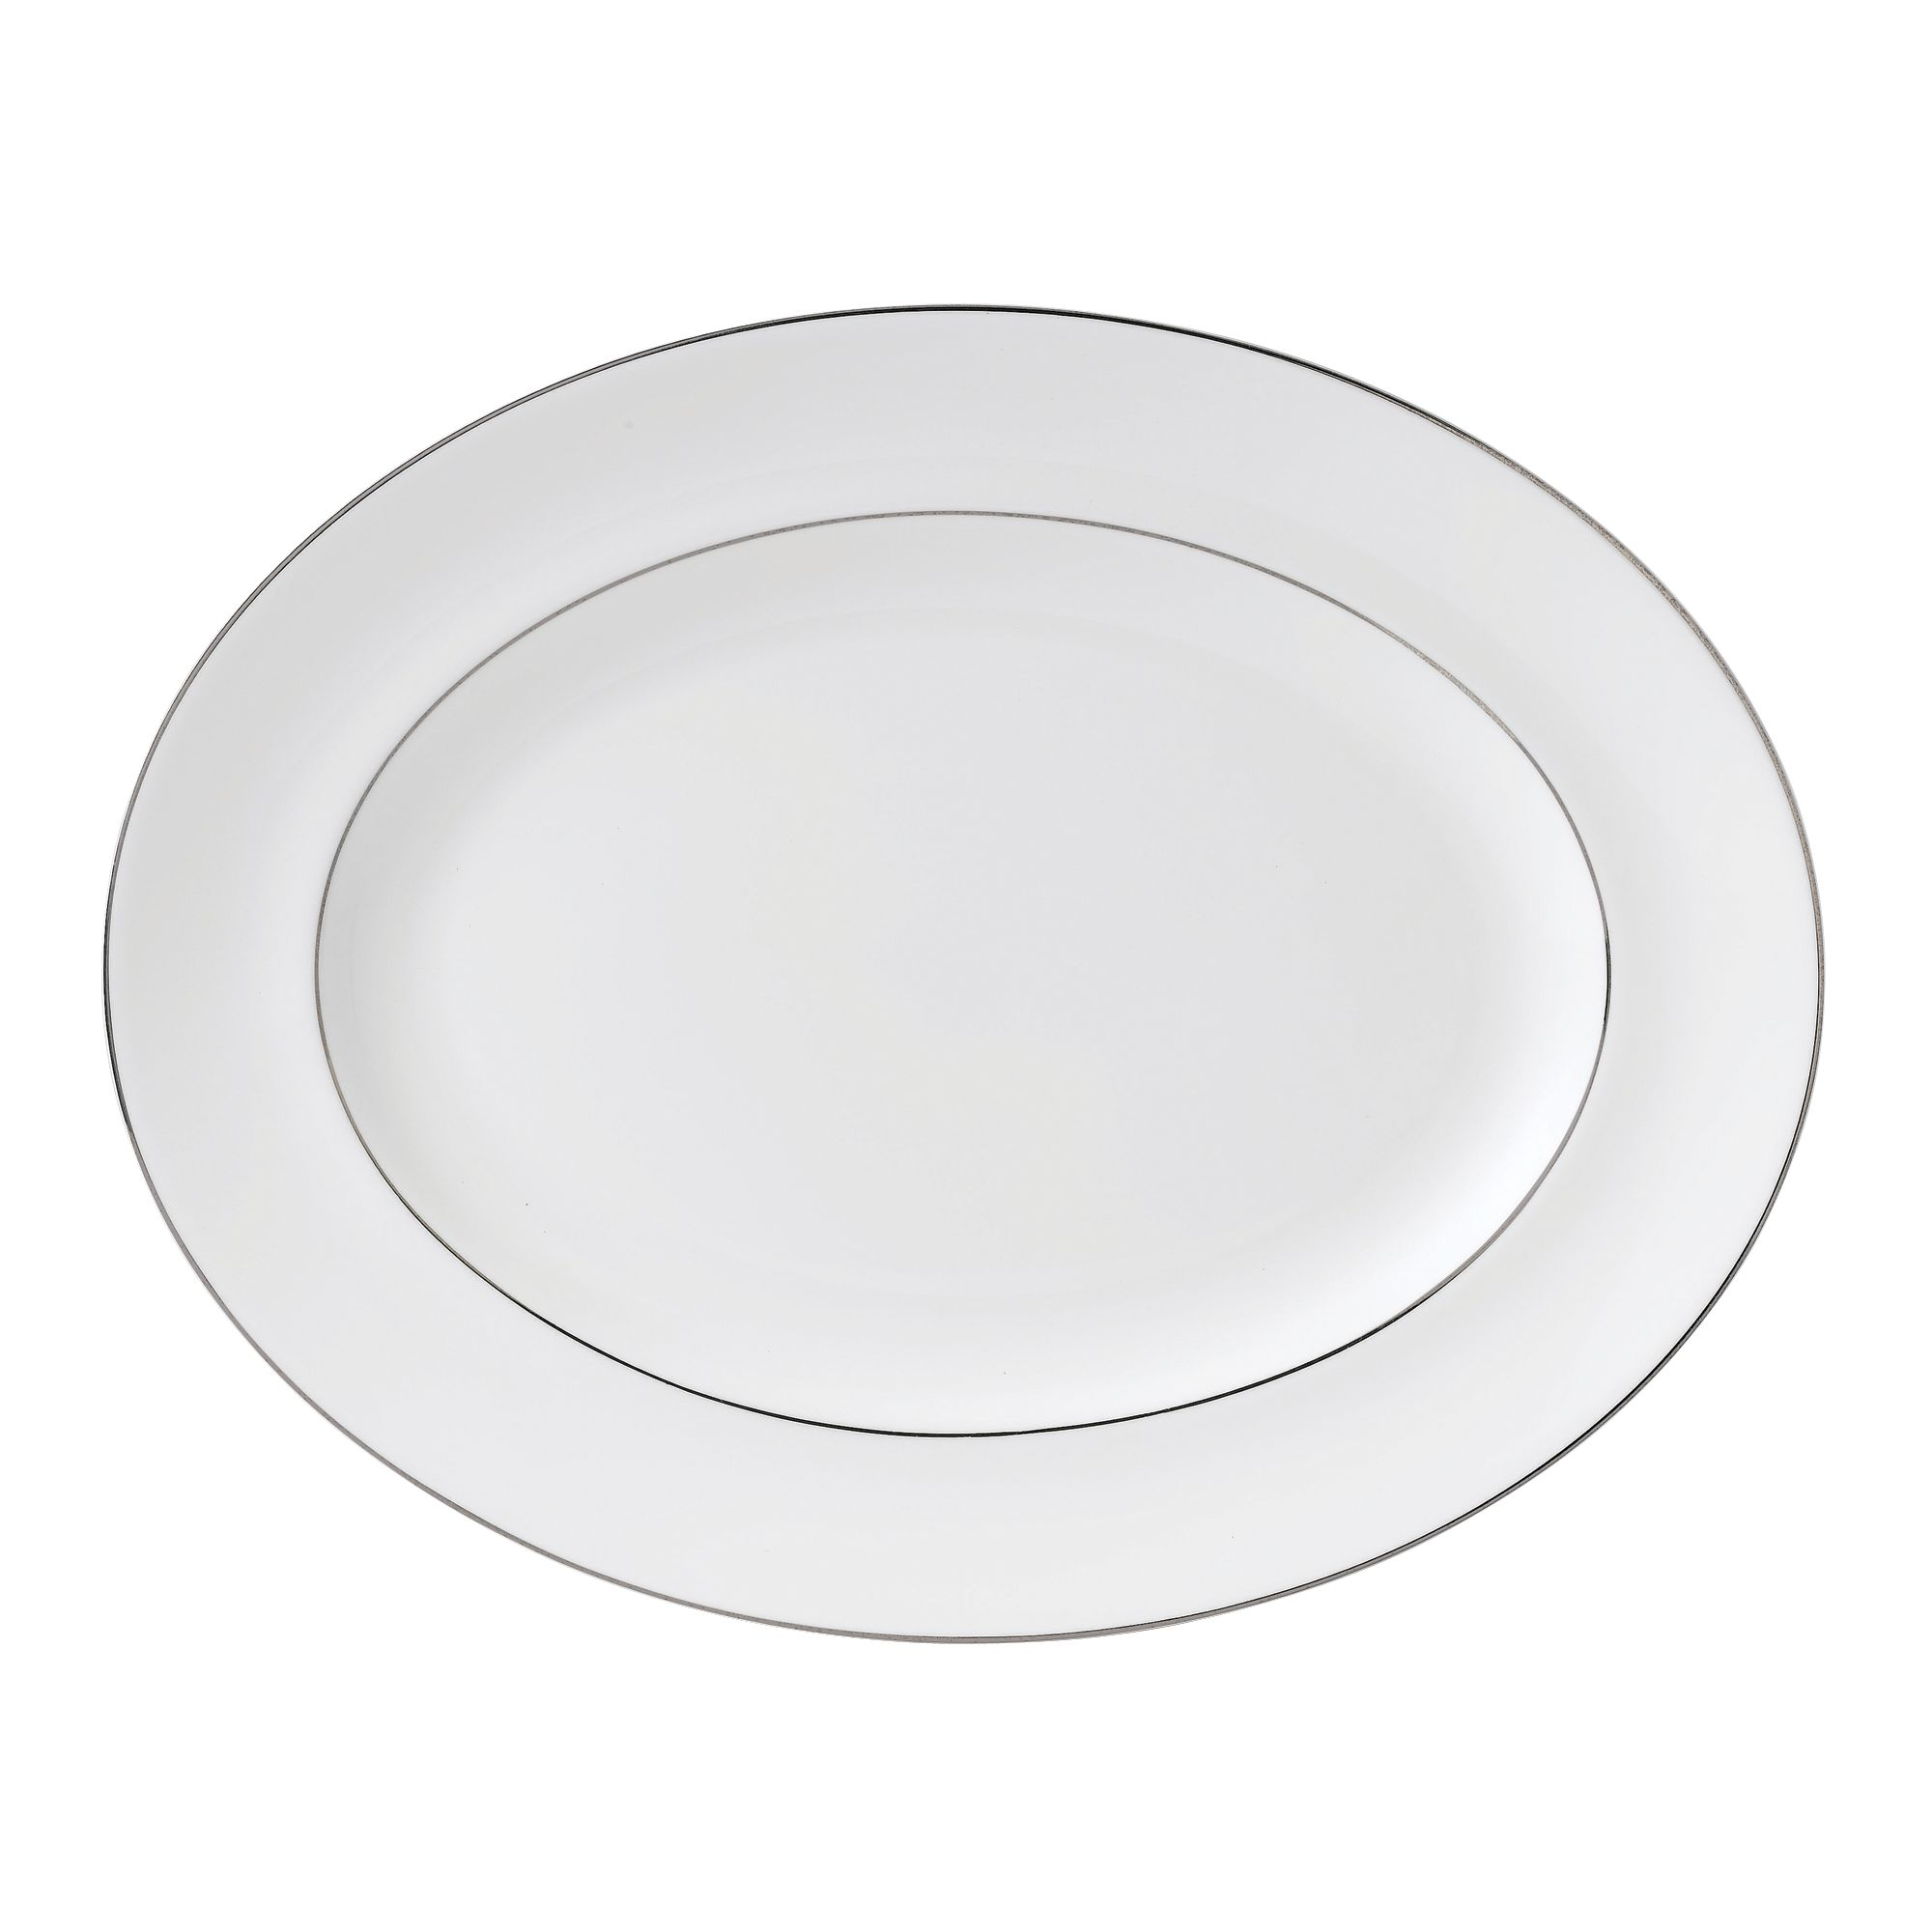 Signet platinum small oval dish